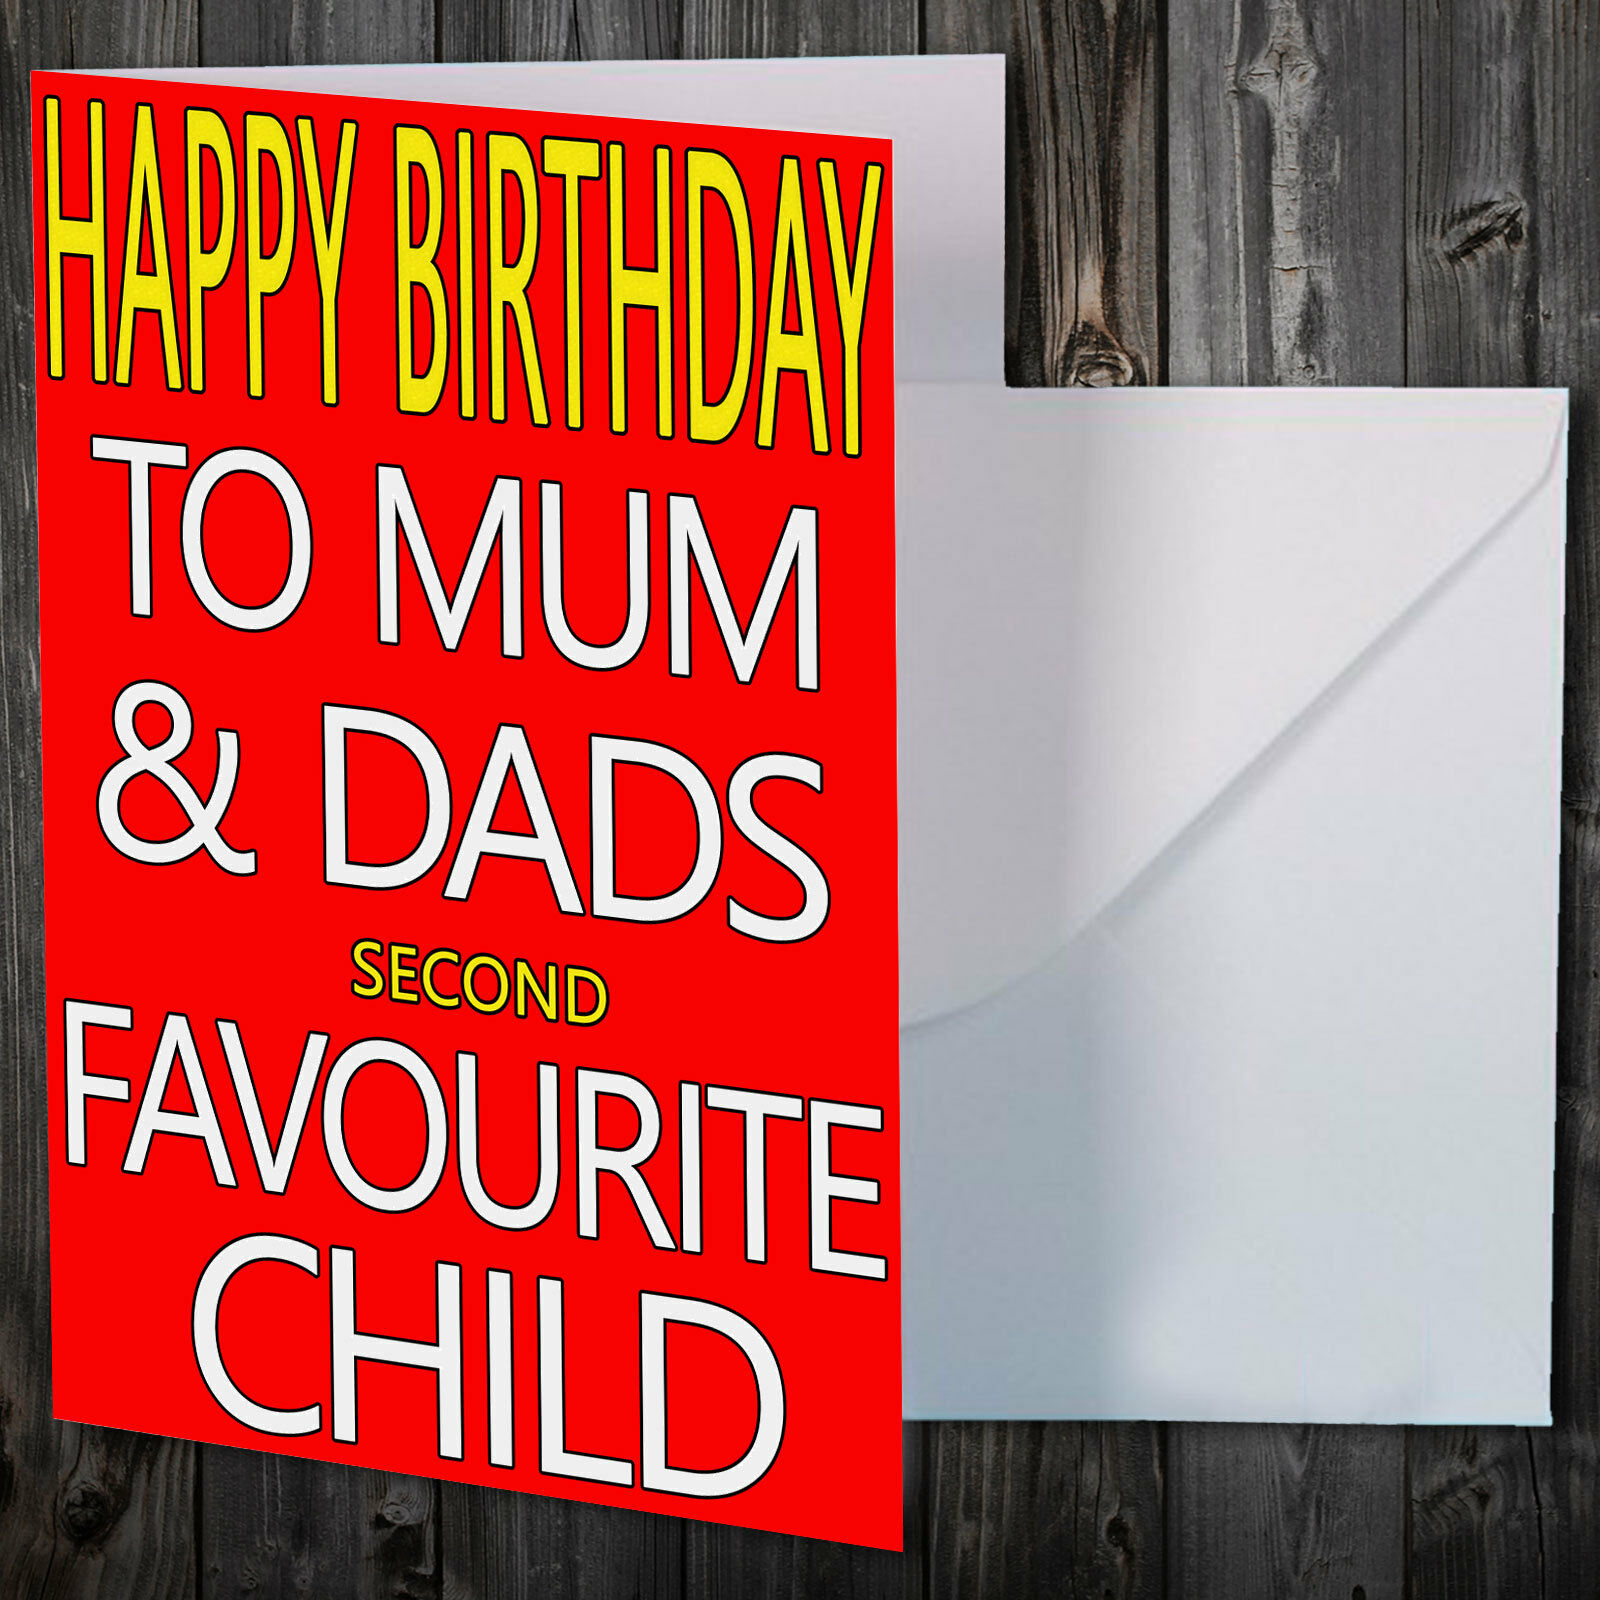 BIRTHDAY CARD FOR SIBLING BredHER SISTER FUNNY COMEDY Nelear1233 Cards Stationery